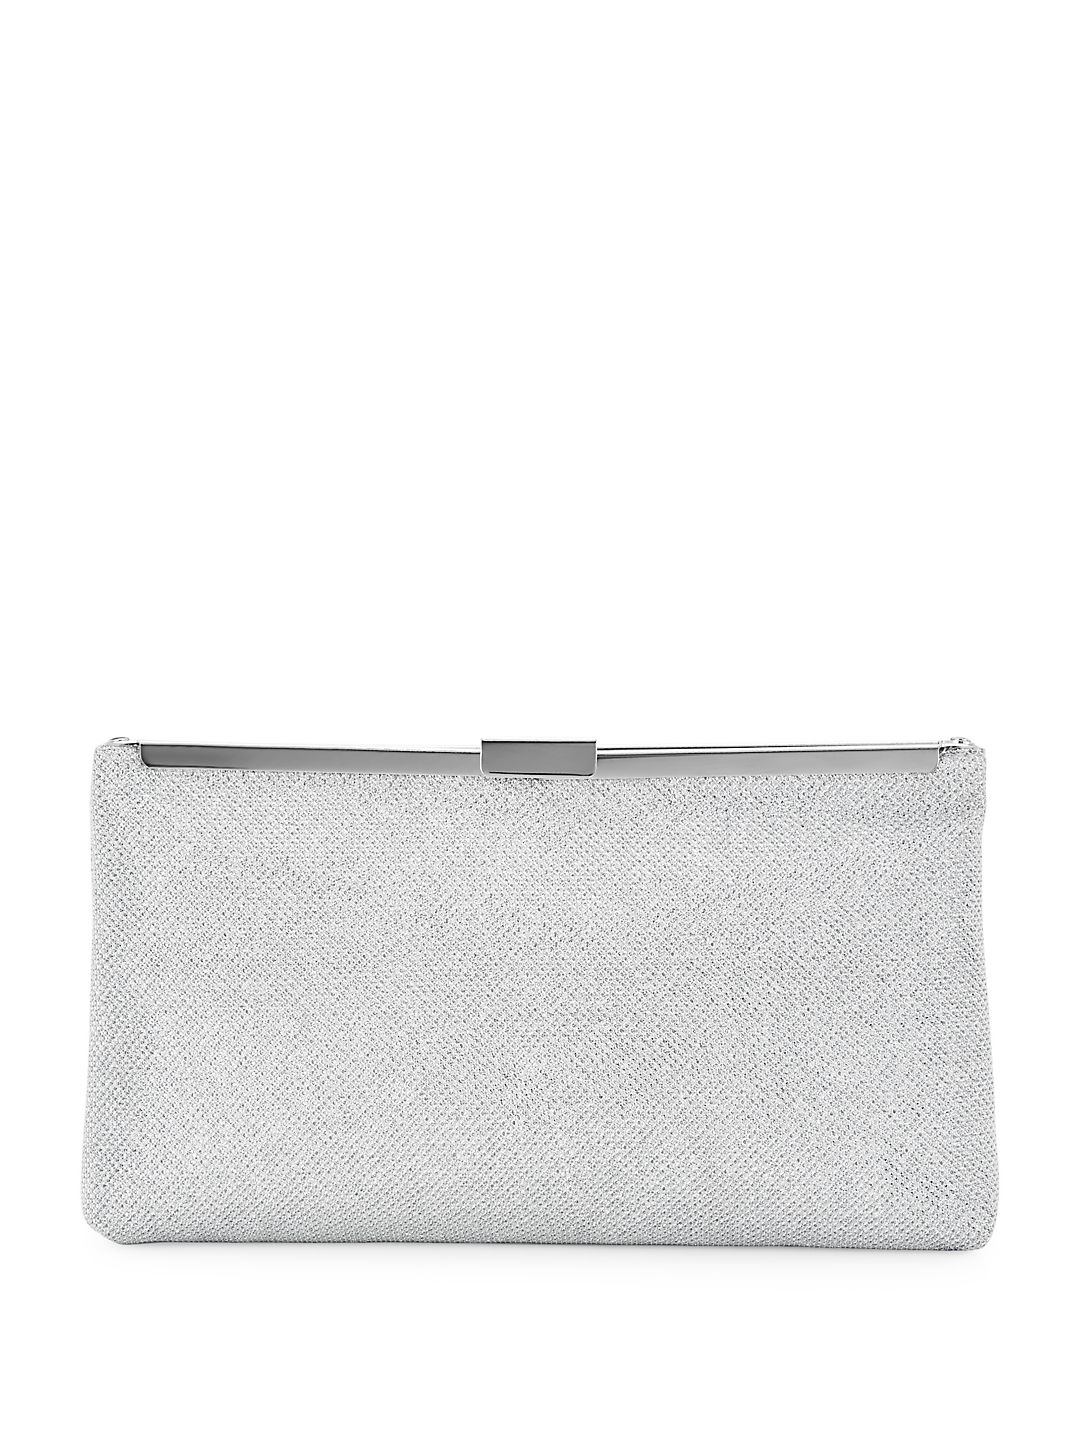 Textured Convertible Clutch